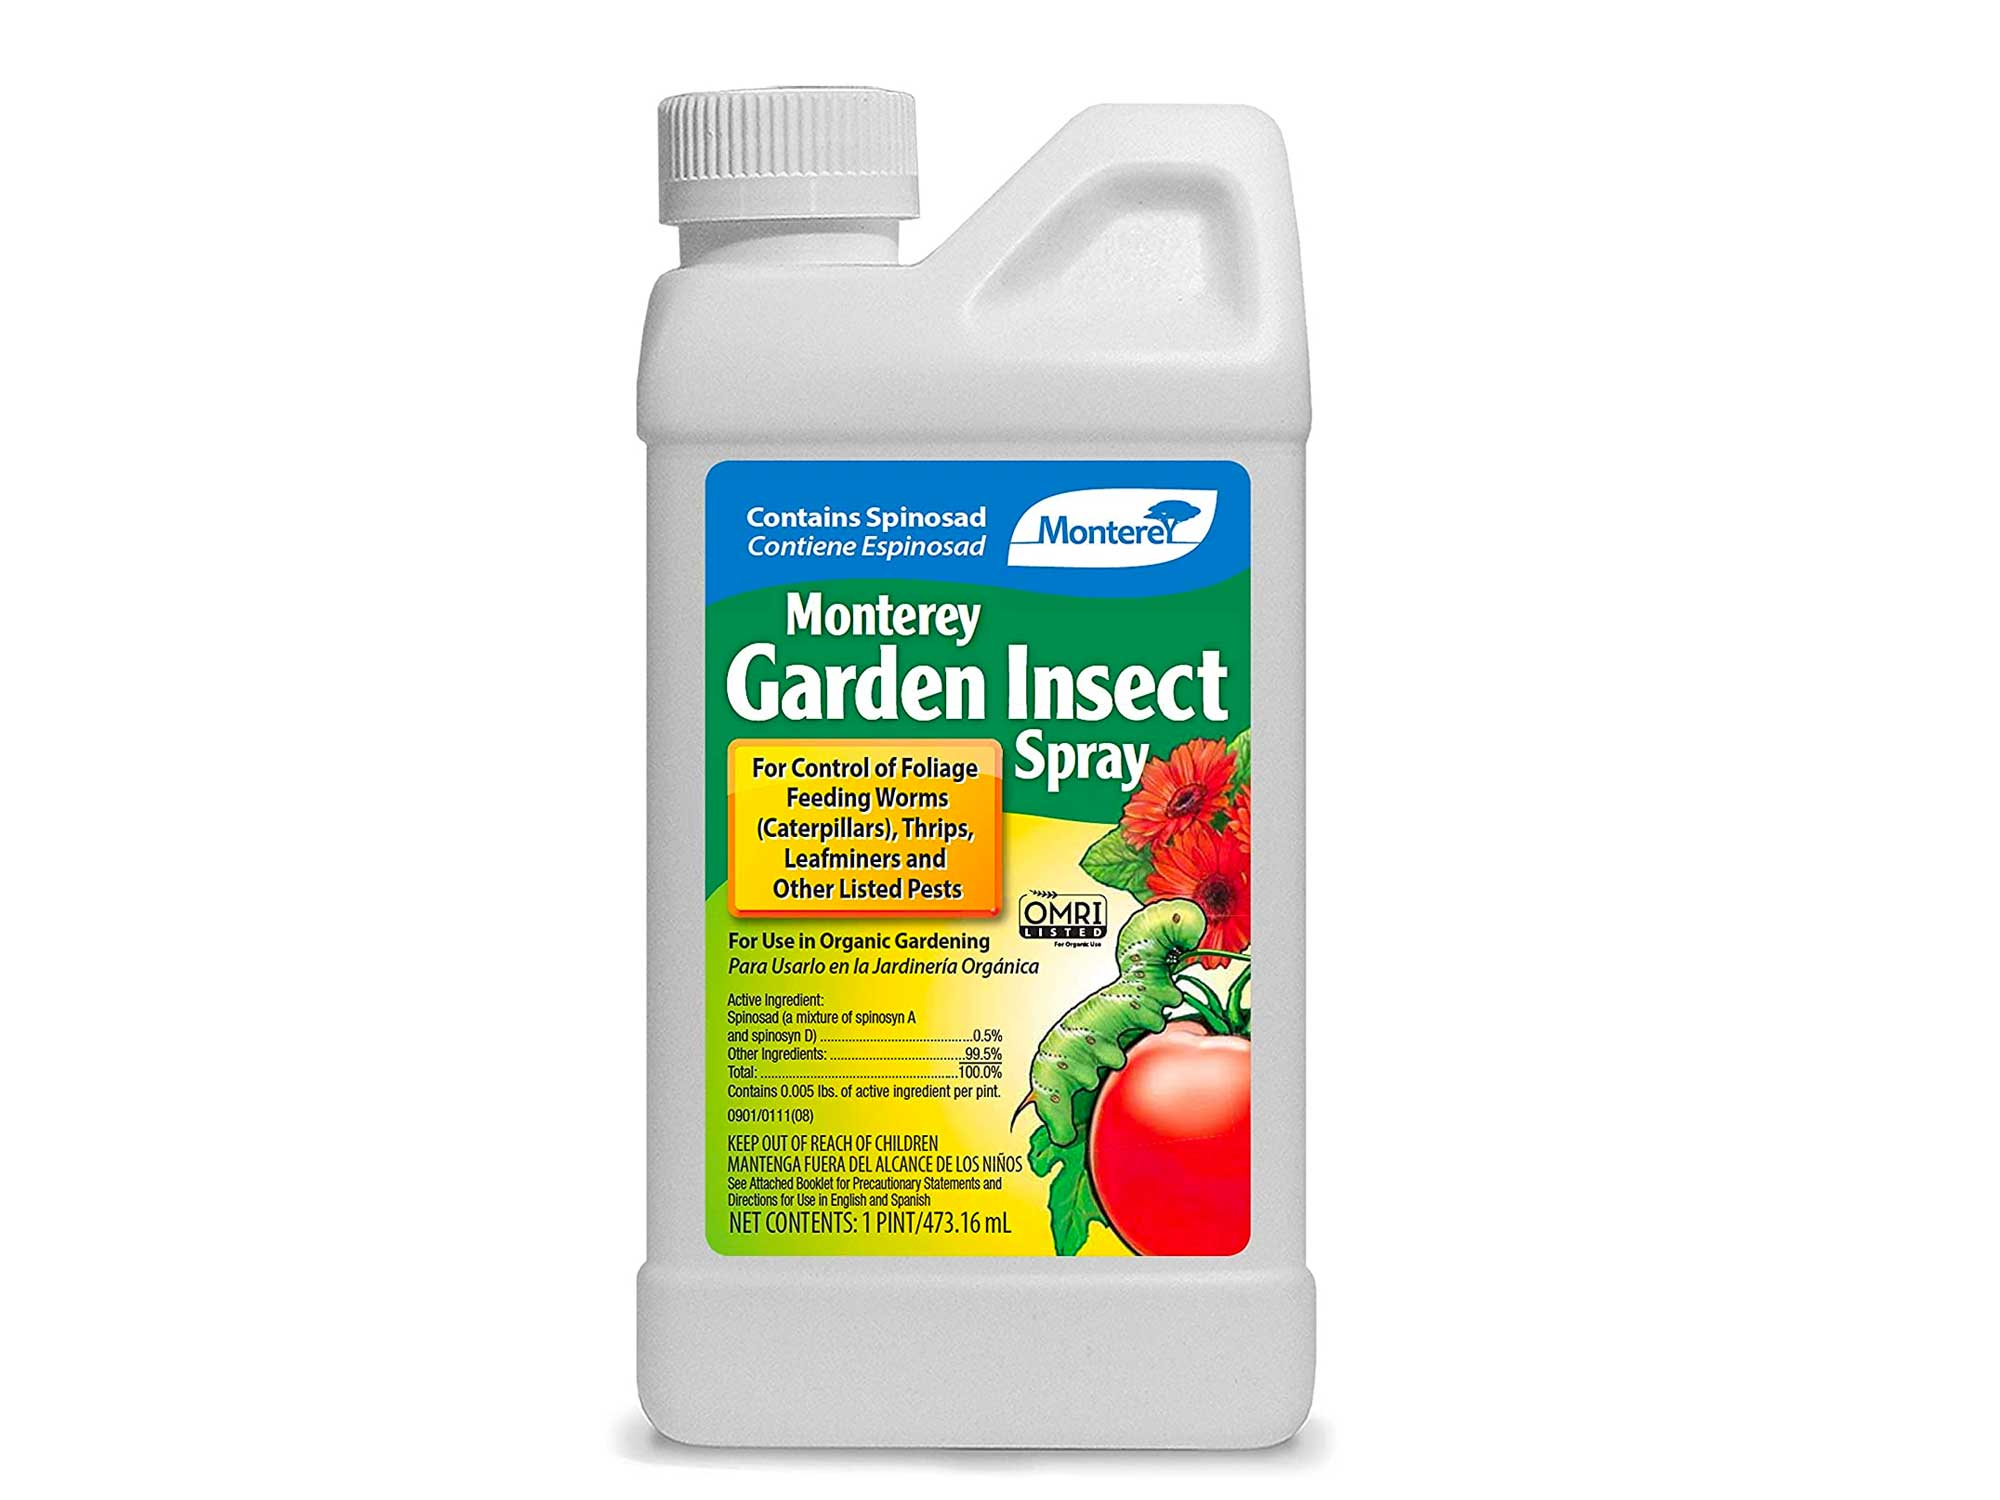 Monterey Garden Insect Spray, Insecticide & Pesticide with Spinosad Concentrate